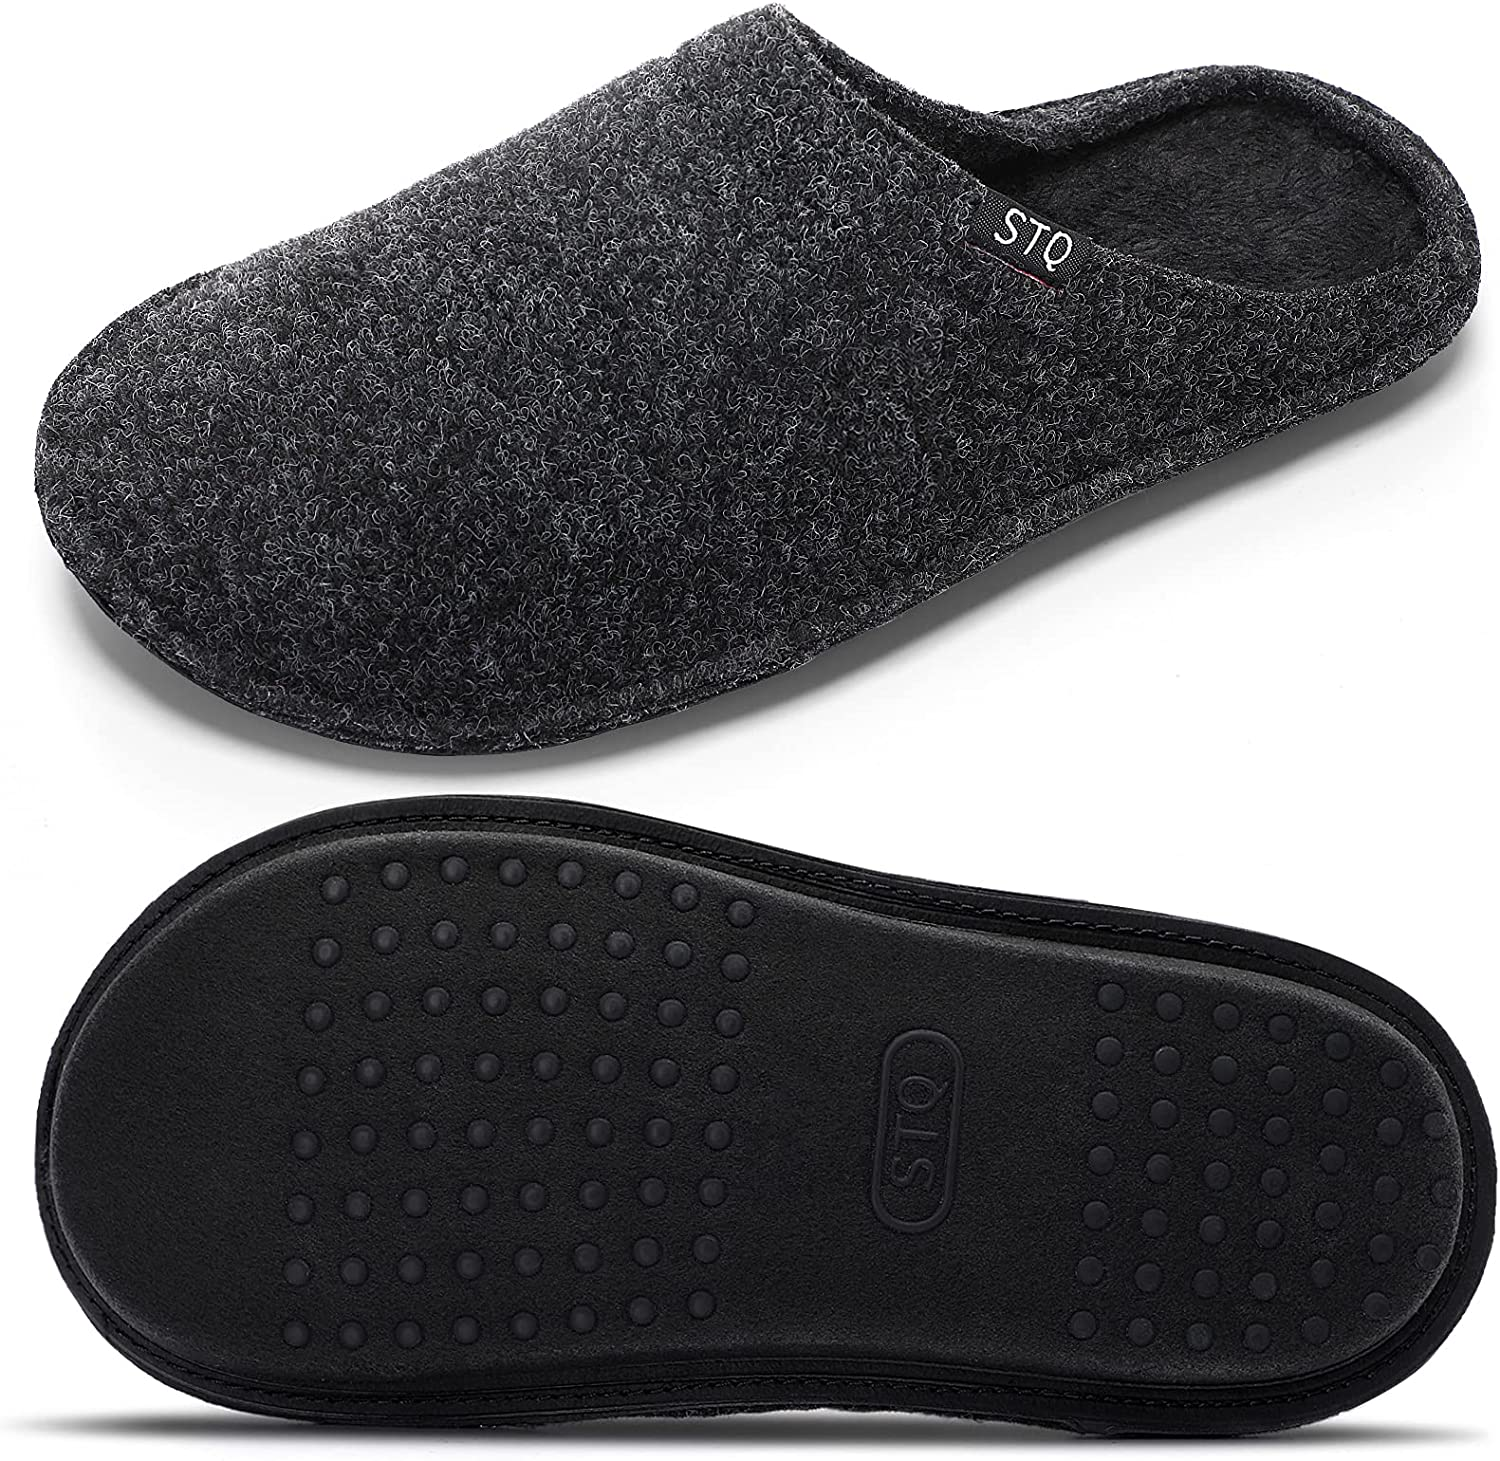 STQ Women's Elegant Classic Slippers Slip on Warm Shoes Cozy and online shopping House